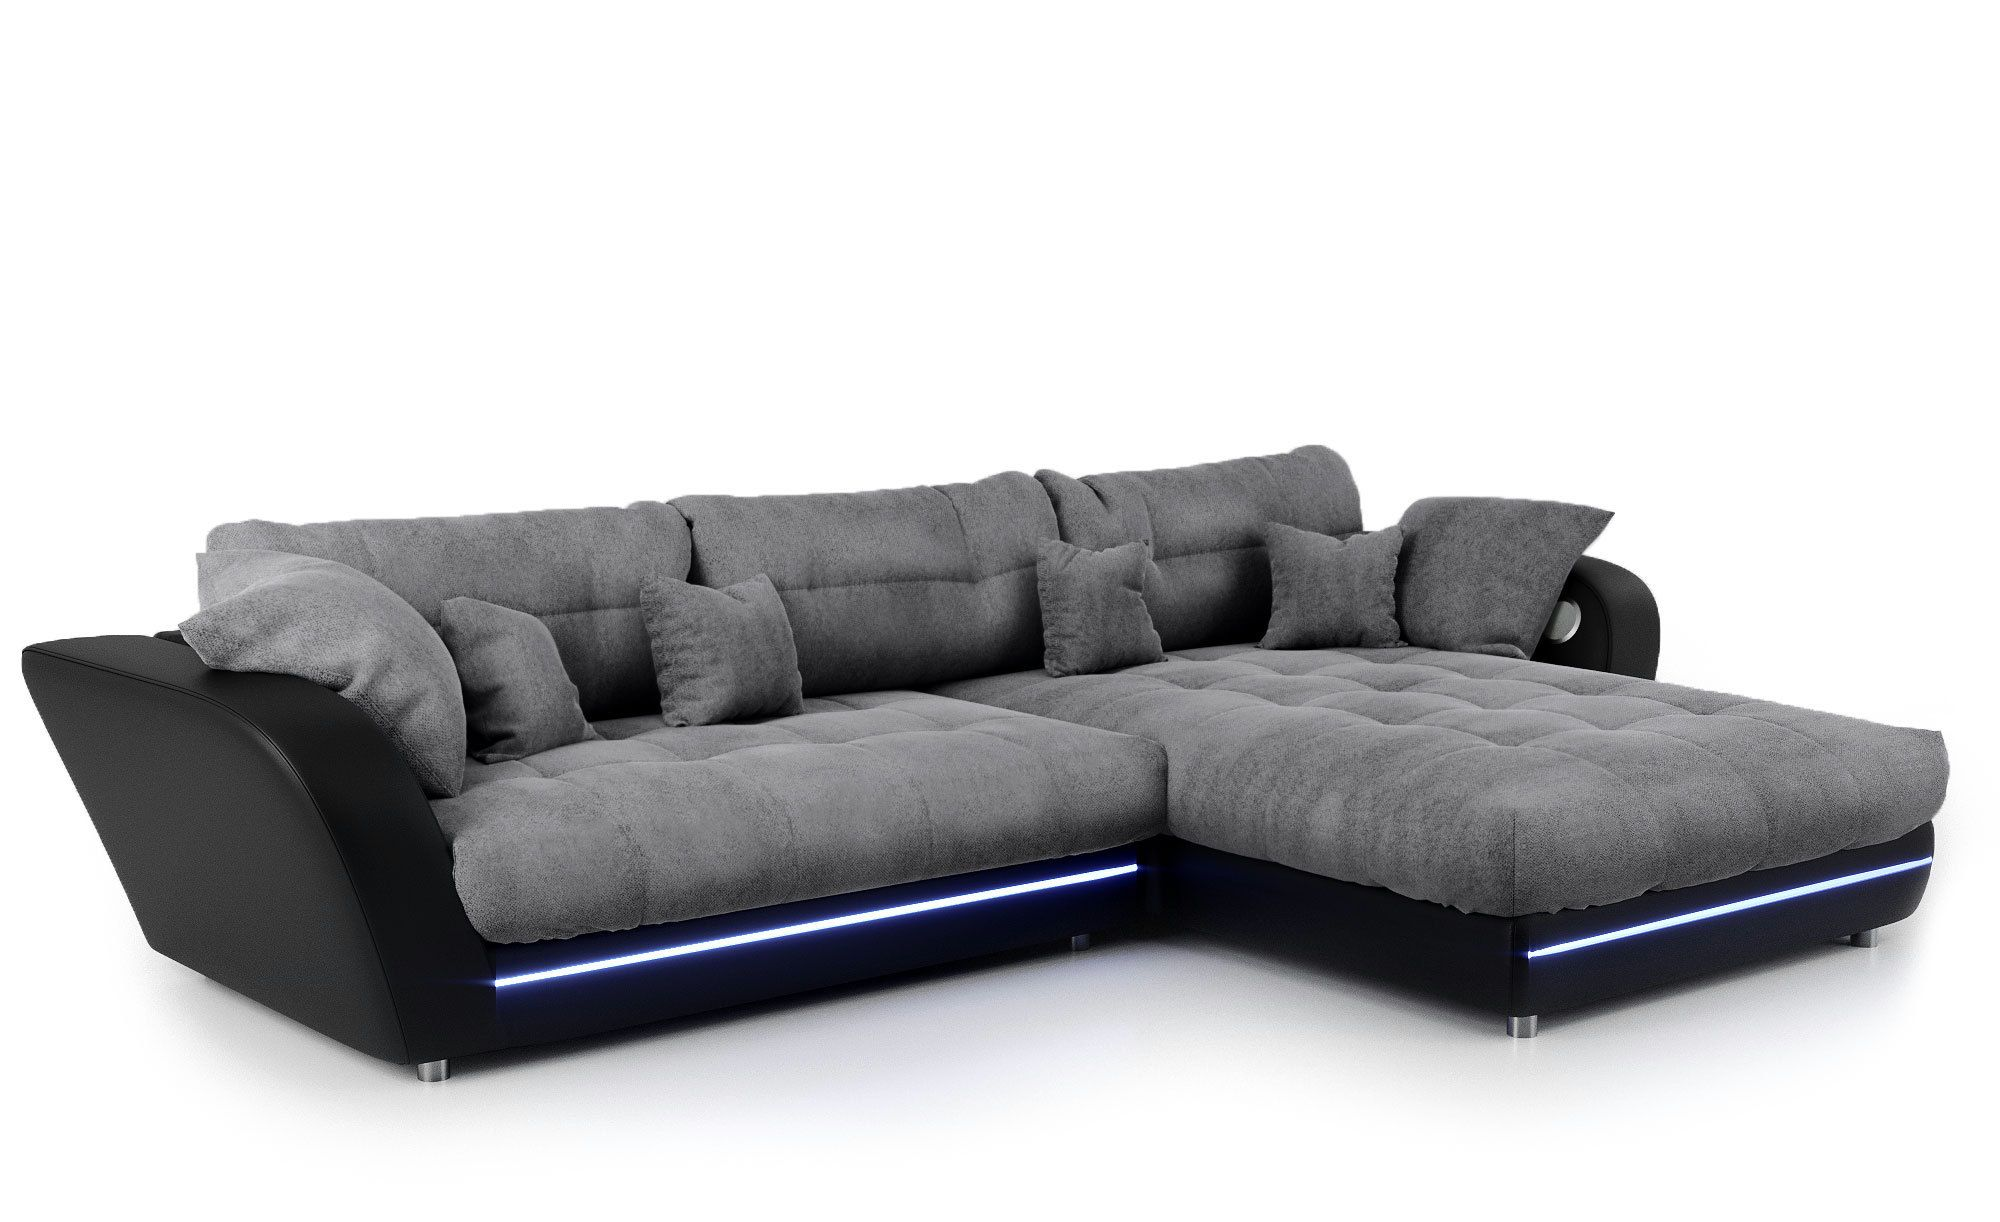 72 Brilliant Couch Klein